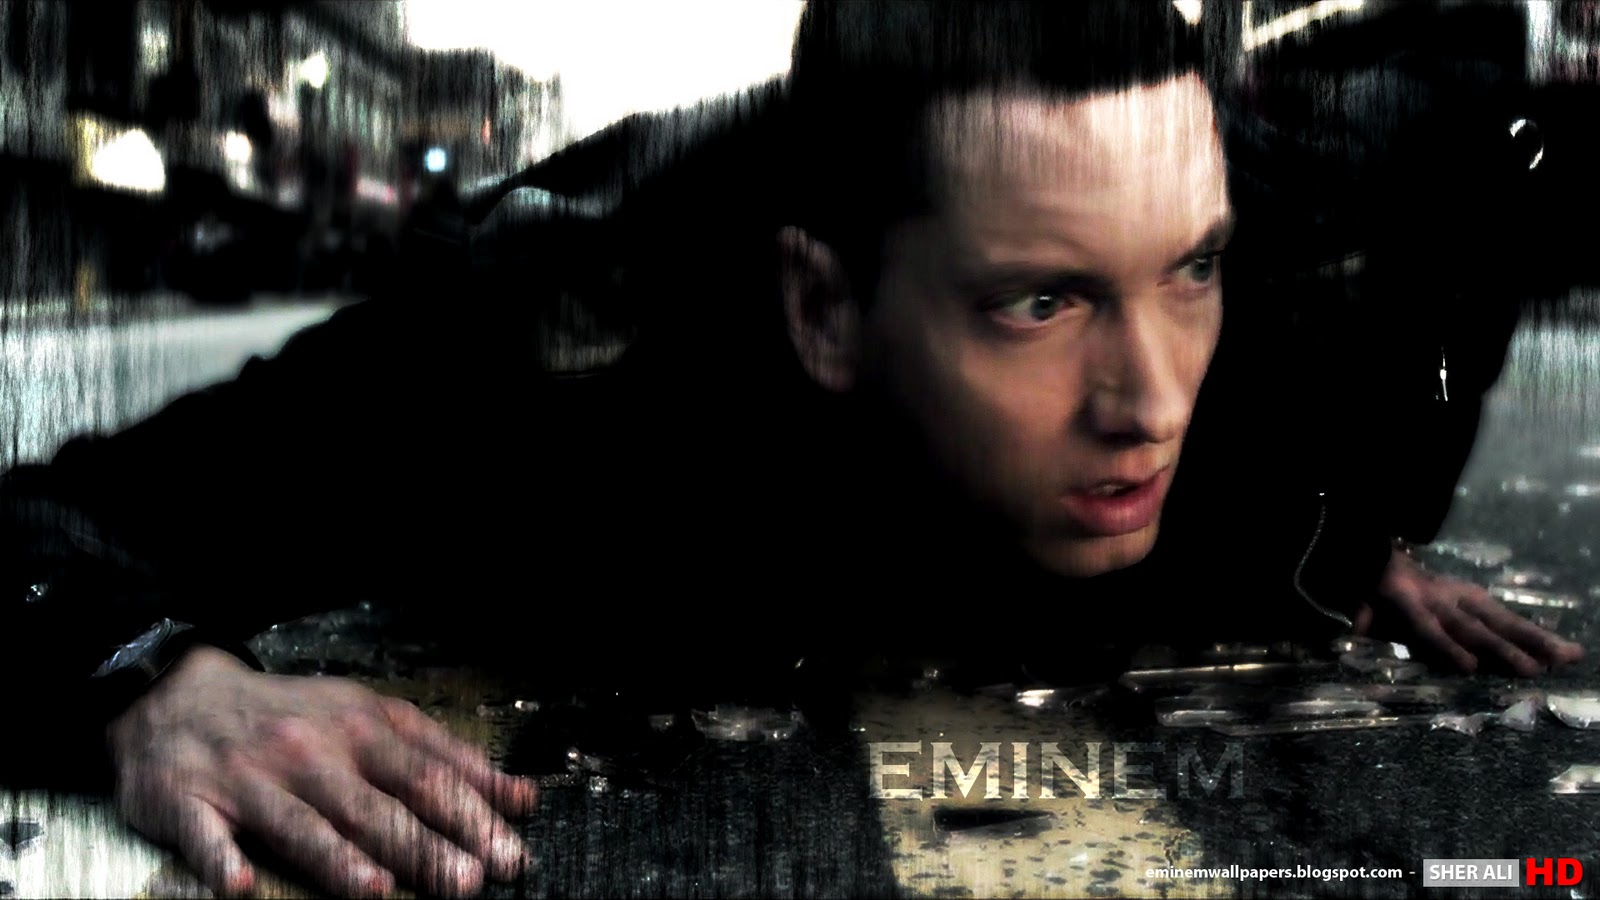 EMINEM WALLPAPERS NEW EMINEM WALLPAPERS   HD1080I 1600X1200 1600x900